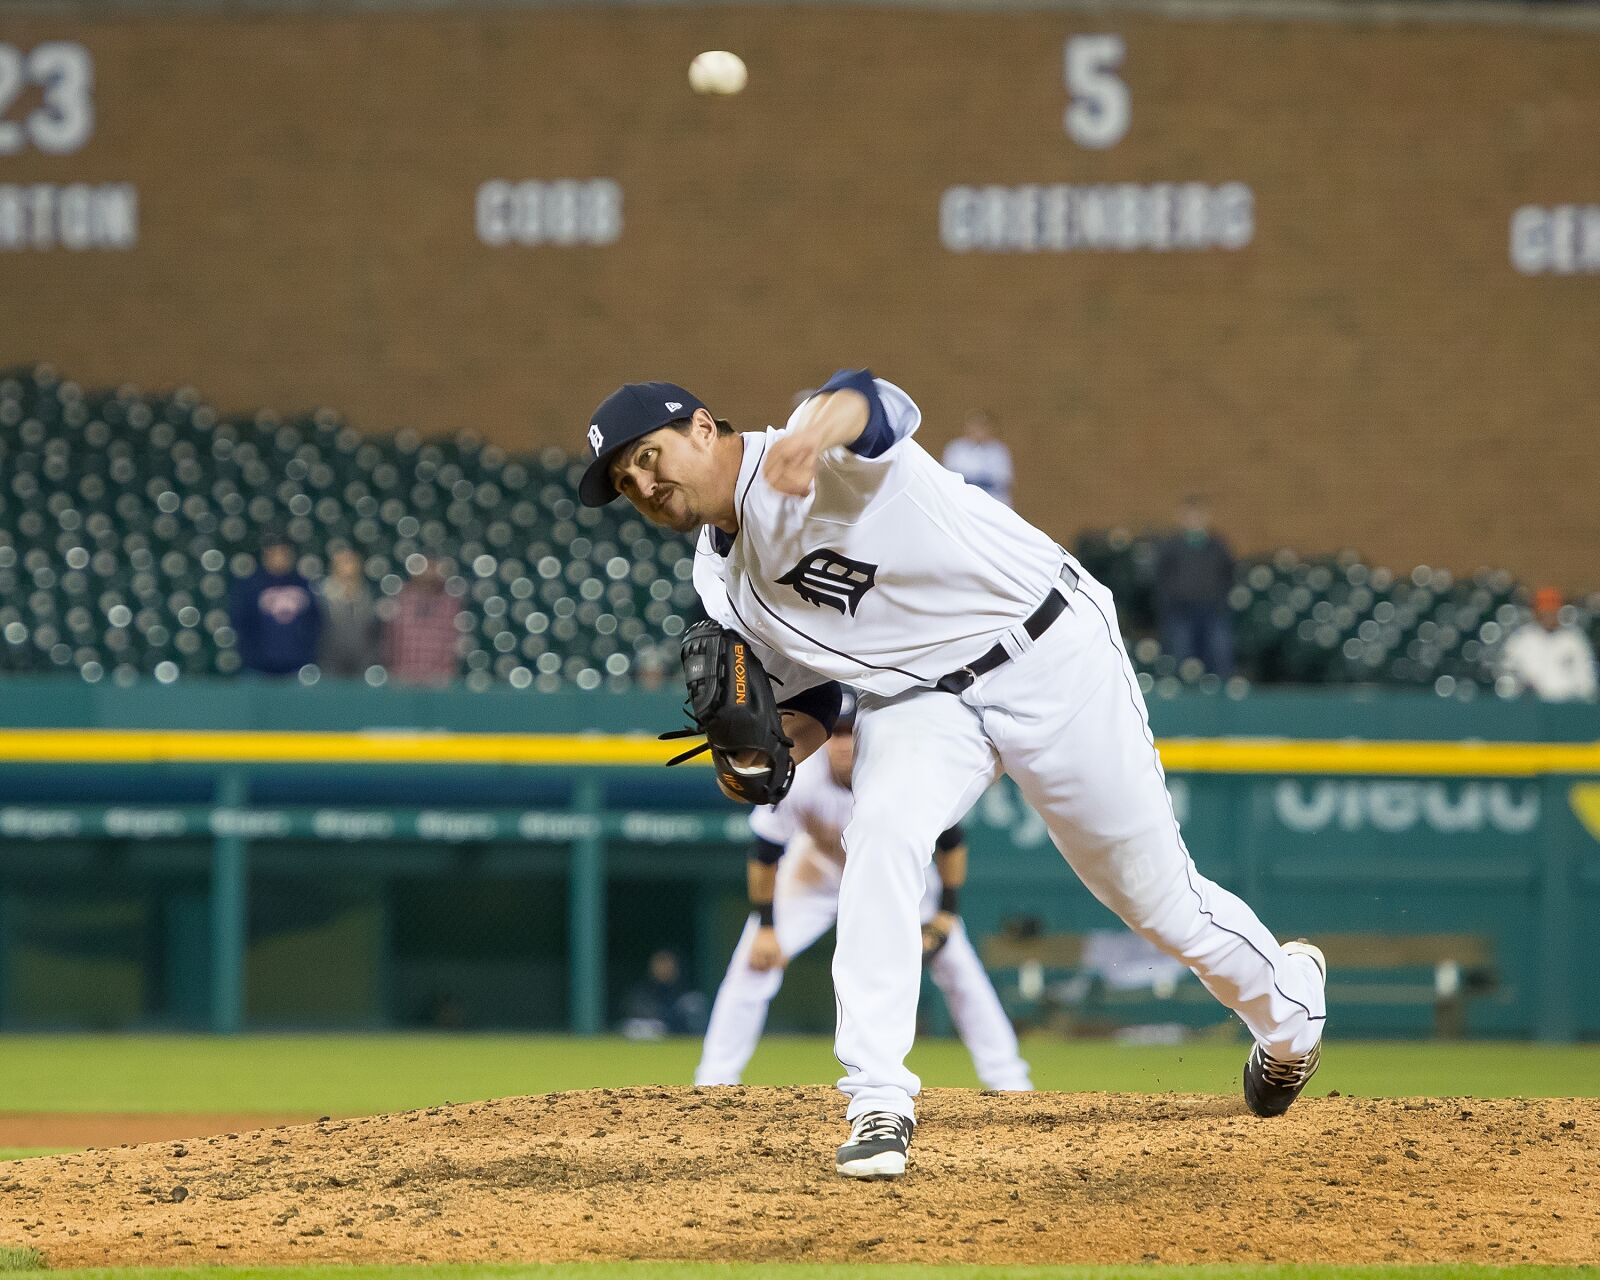 673065330-seattle-mariners-v-detroit-tigers.jpg